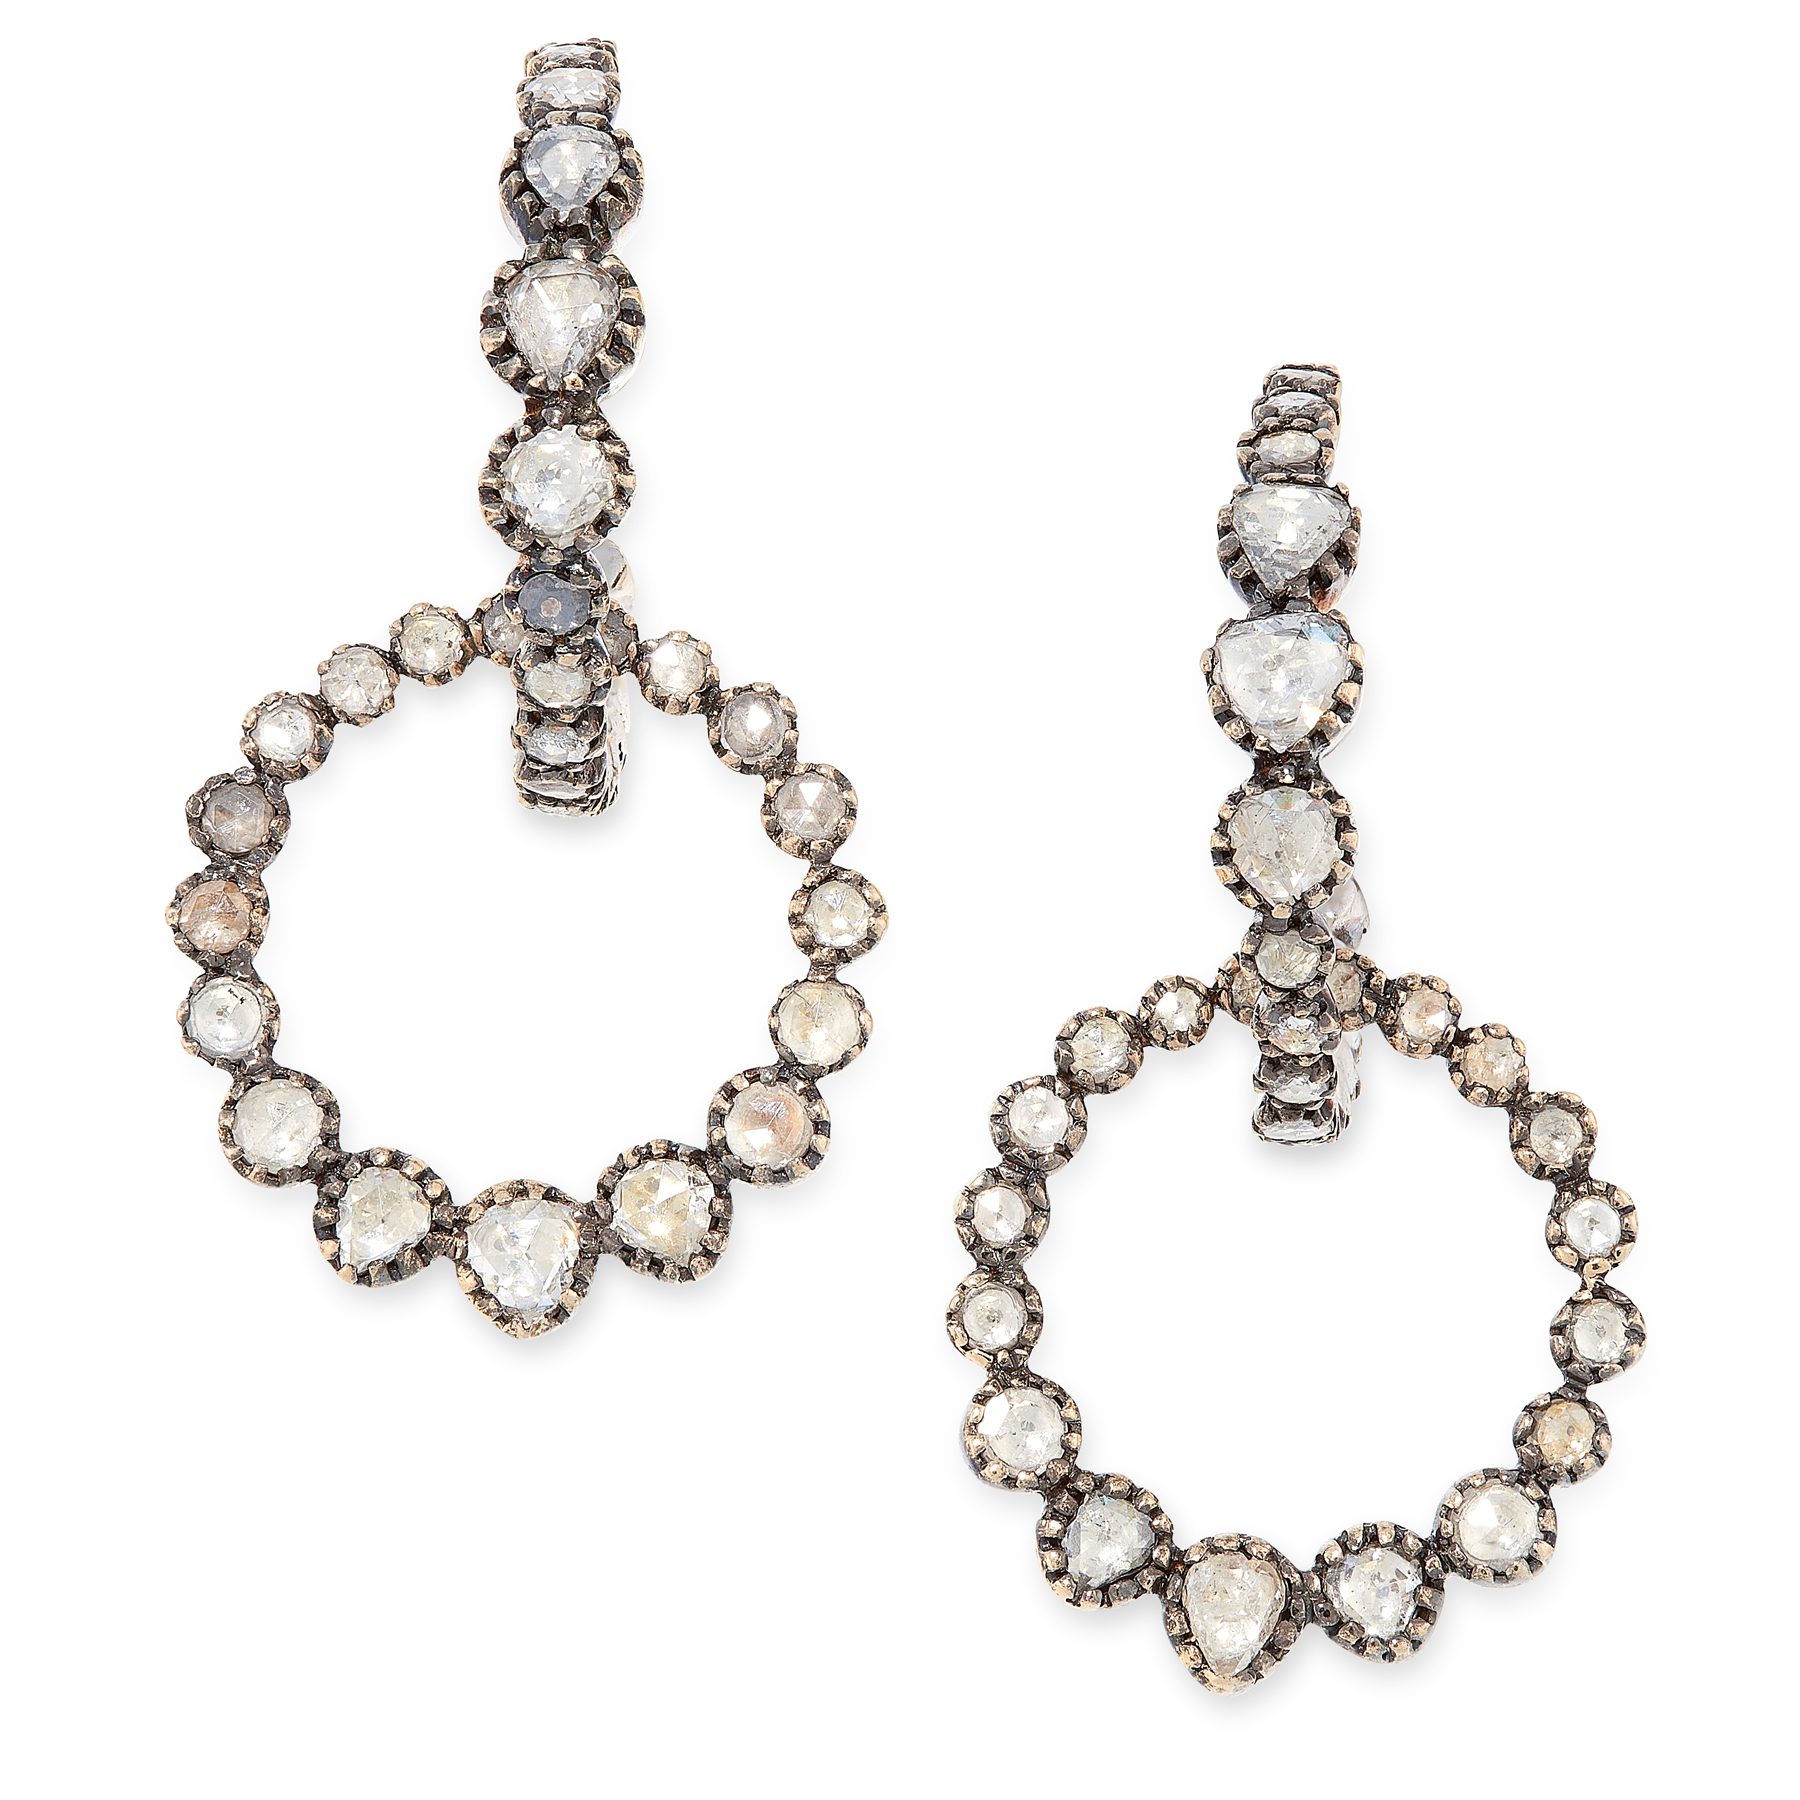 A PAIR OF ANTIQUE GEORGIAN DIAMOND HOOP EARRINGS, CIRCA 1800 in yellow gold and silver, each - Image 2 of 2